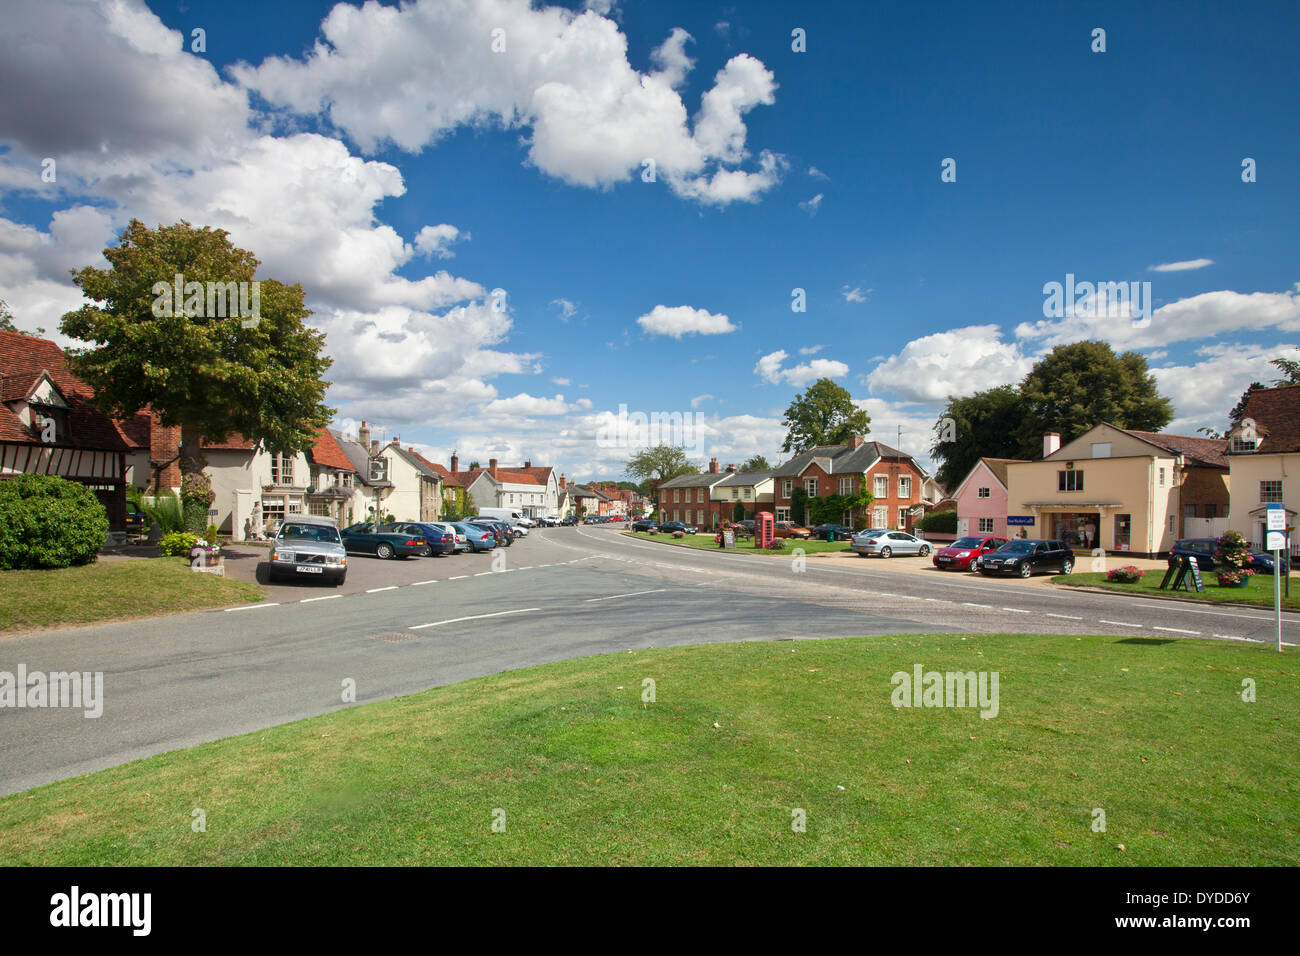 The picturesque village of Cavendish in Suffolk. - Stock Image